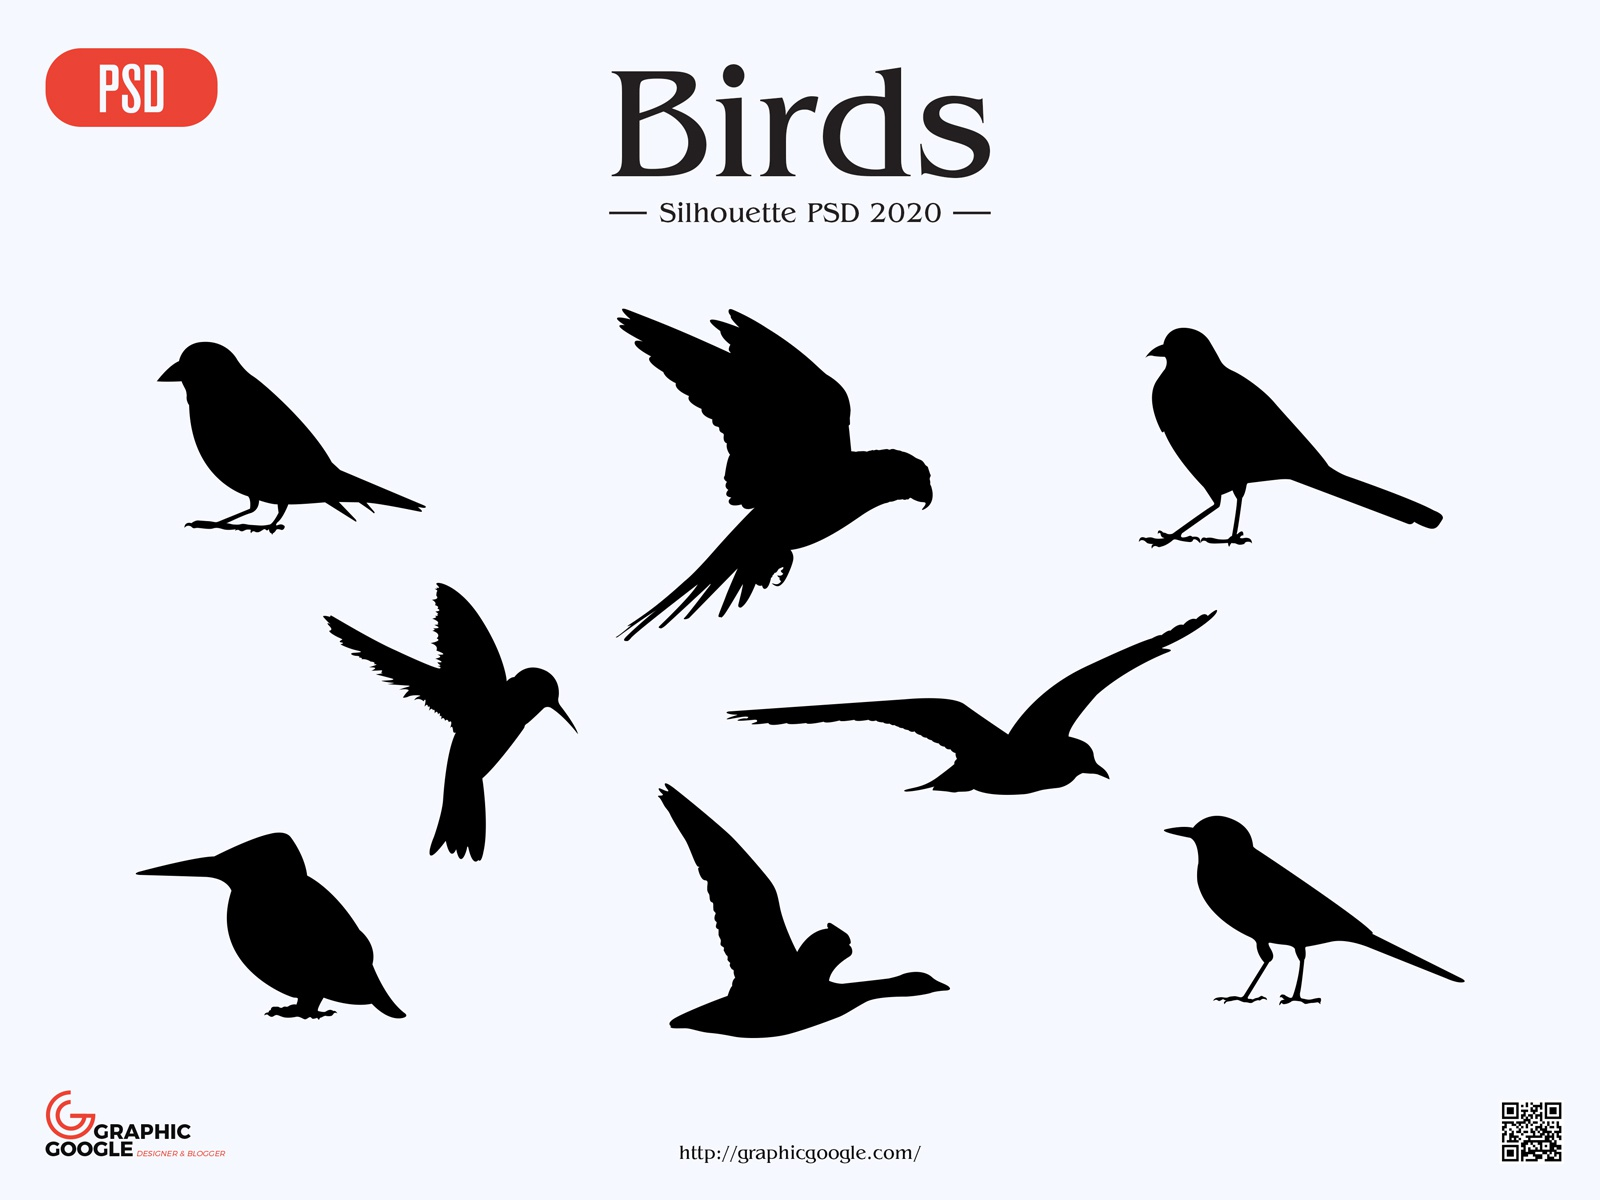 Free Birds Silhouette PSD by Graphic Google on Dribbble